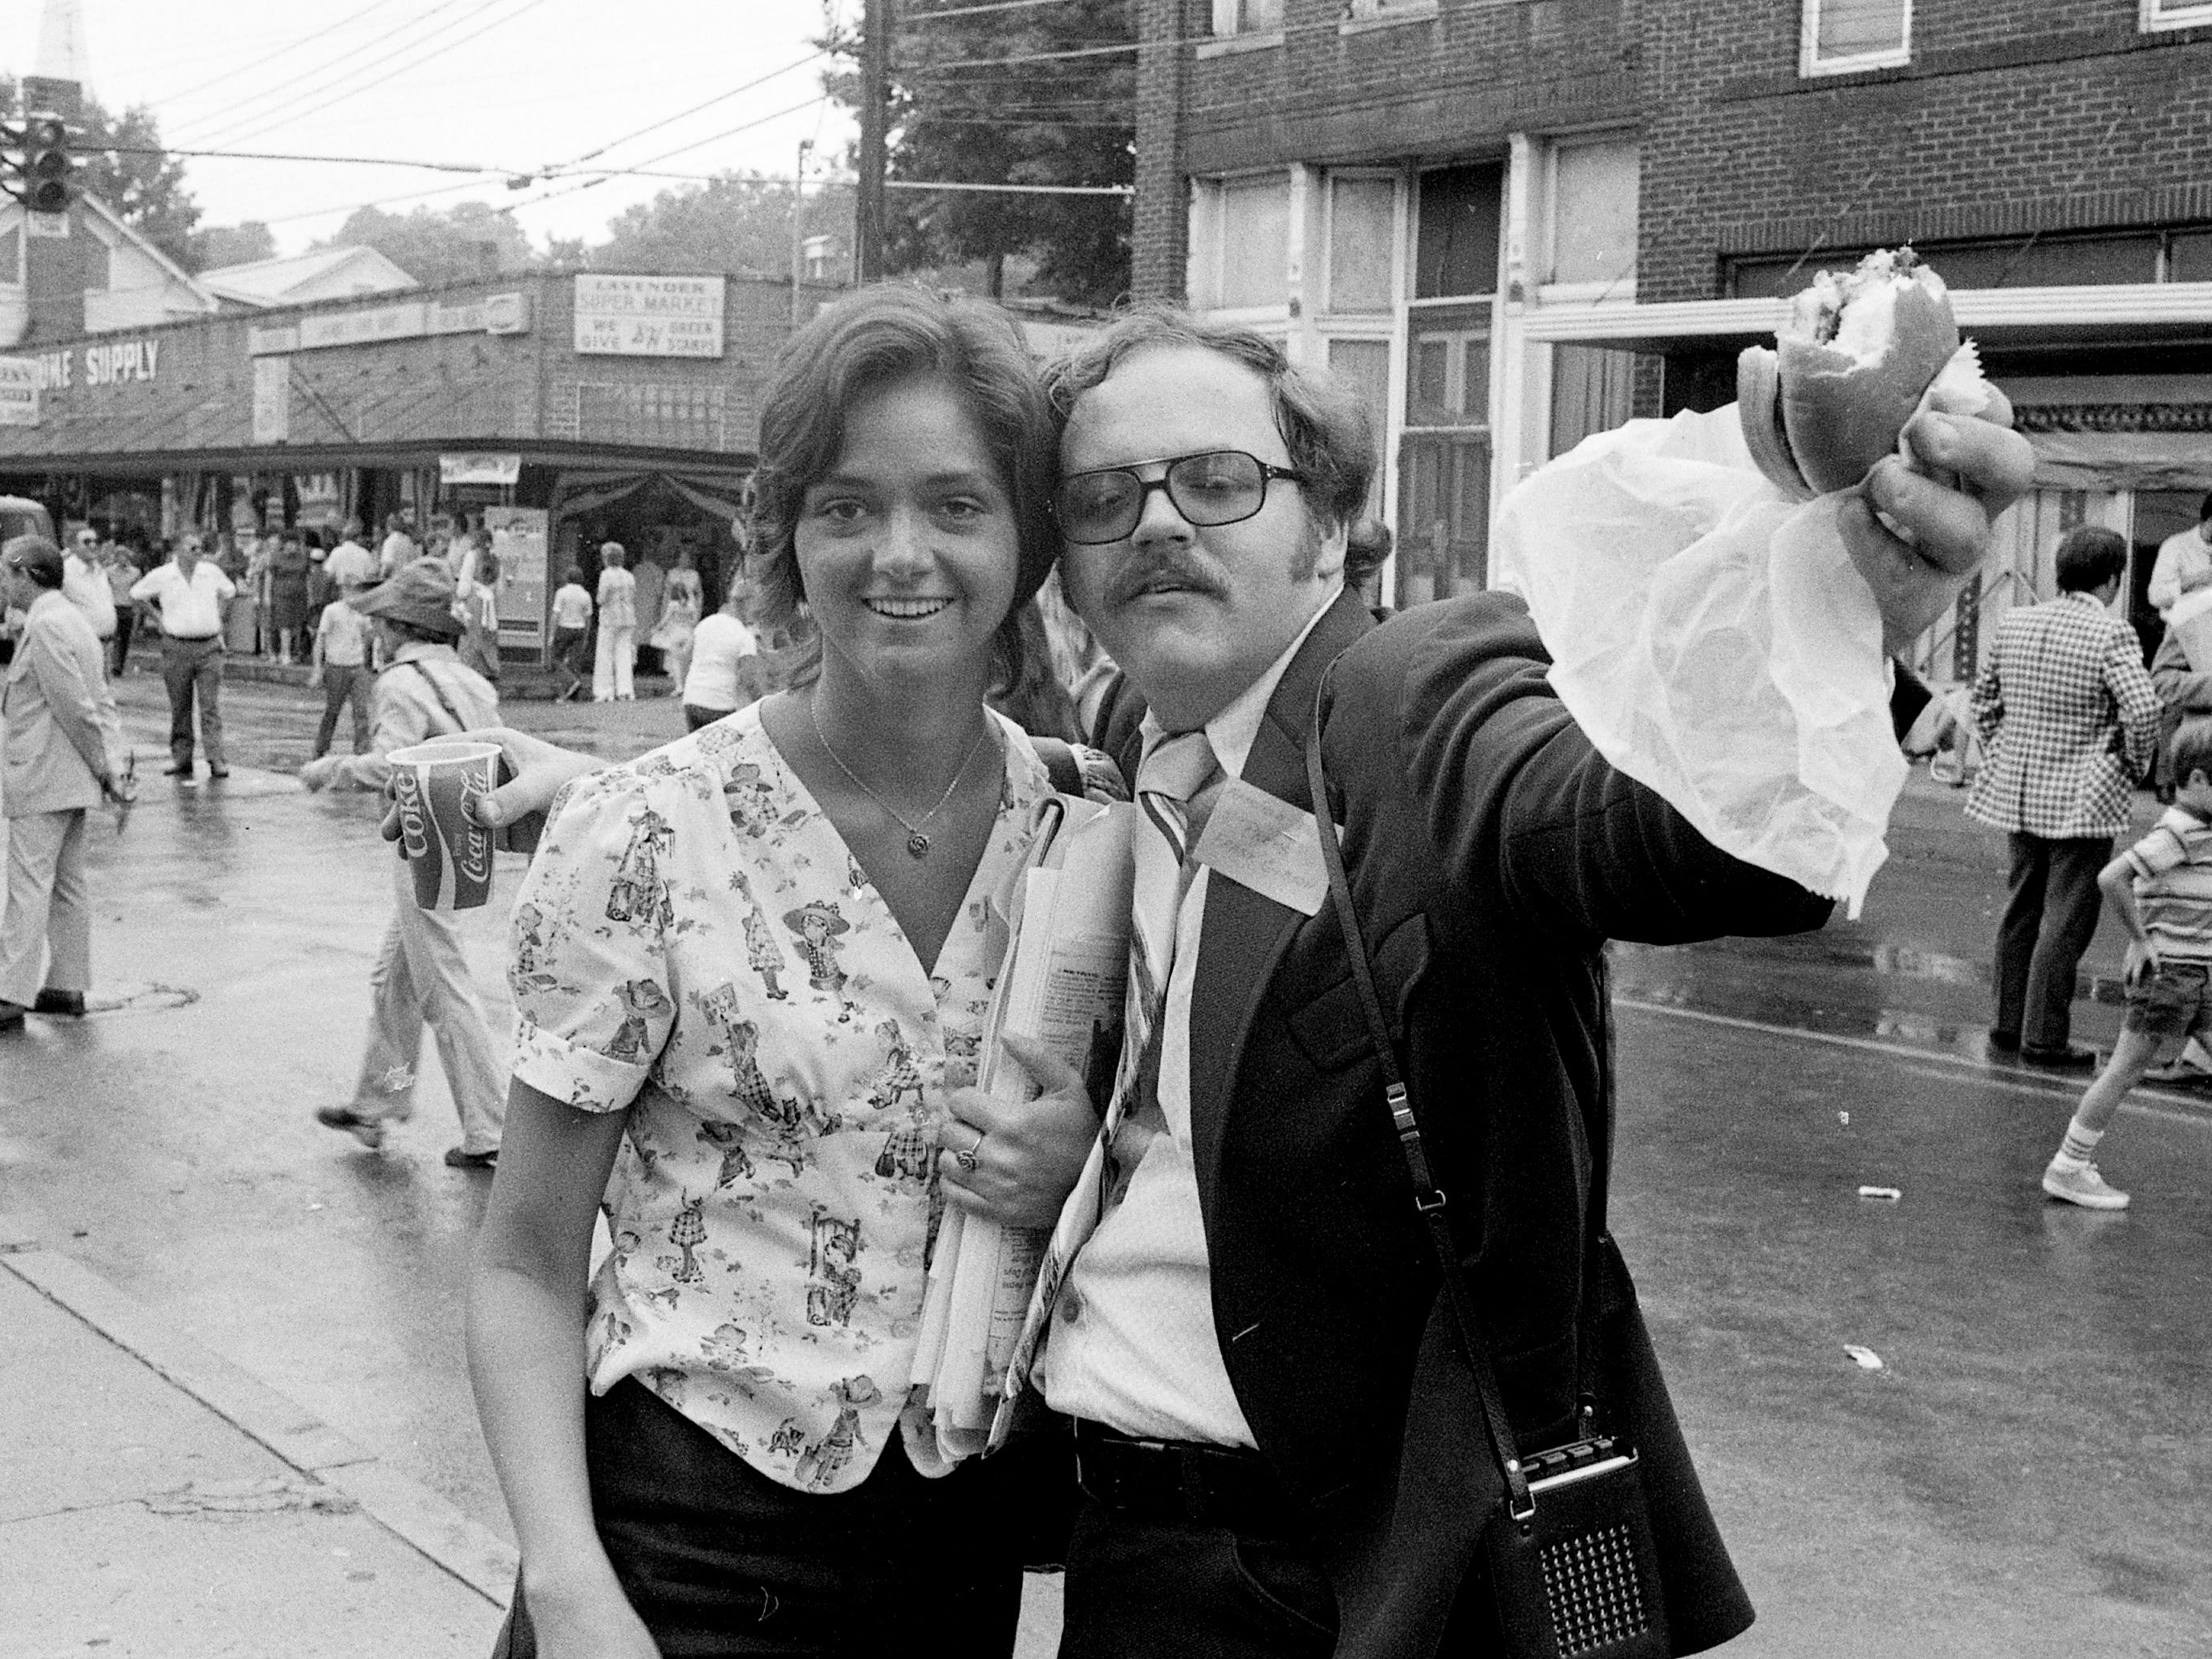 Tennessean reporter Frank Gibson, right, enjoys a meal during the activities of the bicentennial celebration of Jonesboro, Tenn., on July 6, 1974.